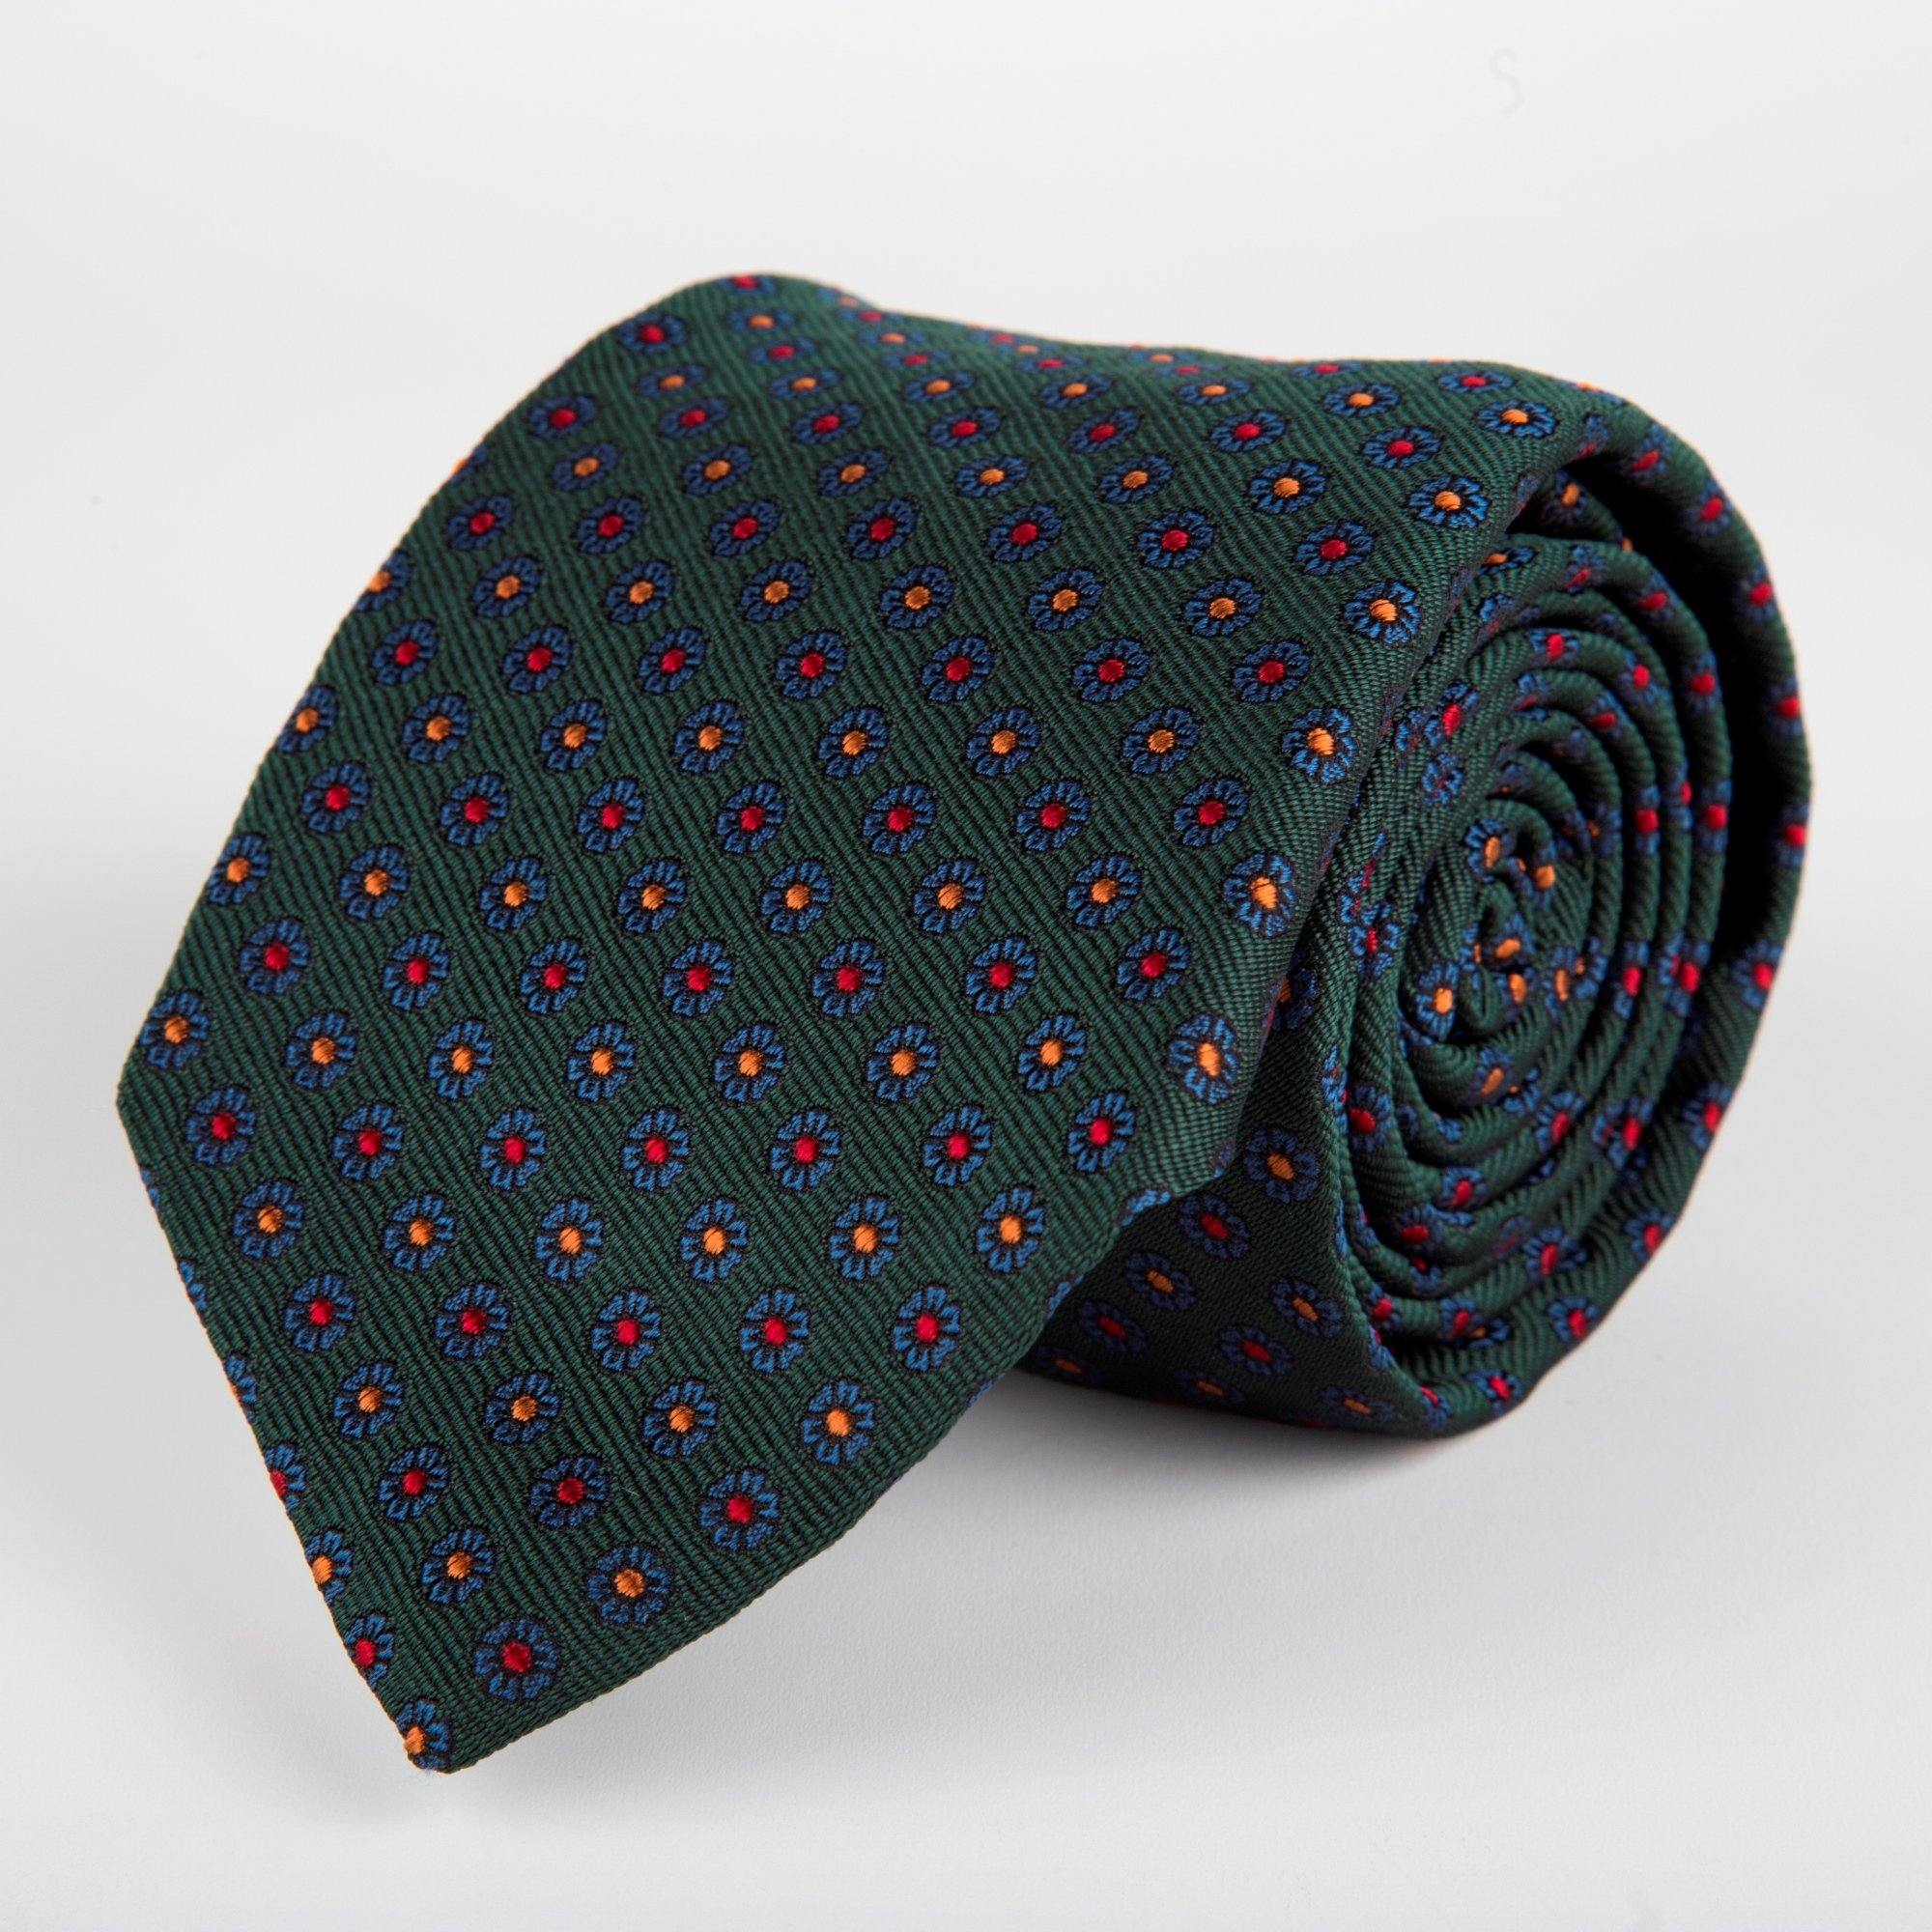 Green Neat Flower Woven Silk Tie Hand Finished - British Made